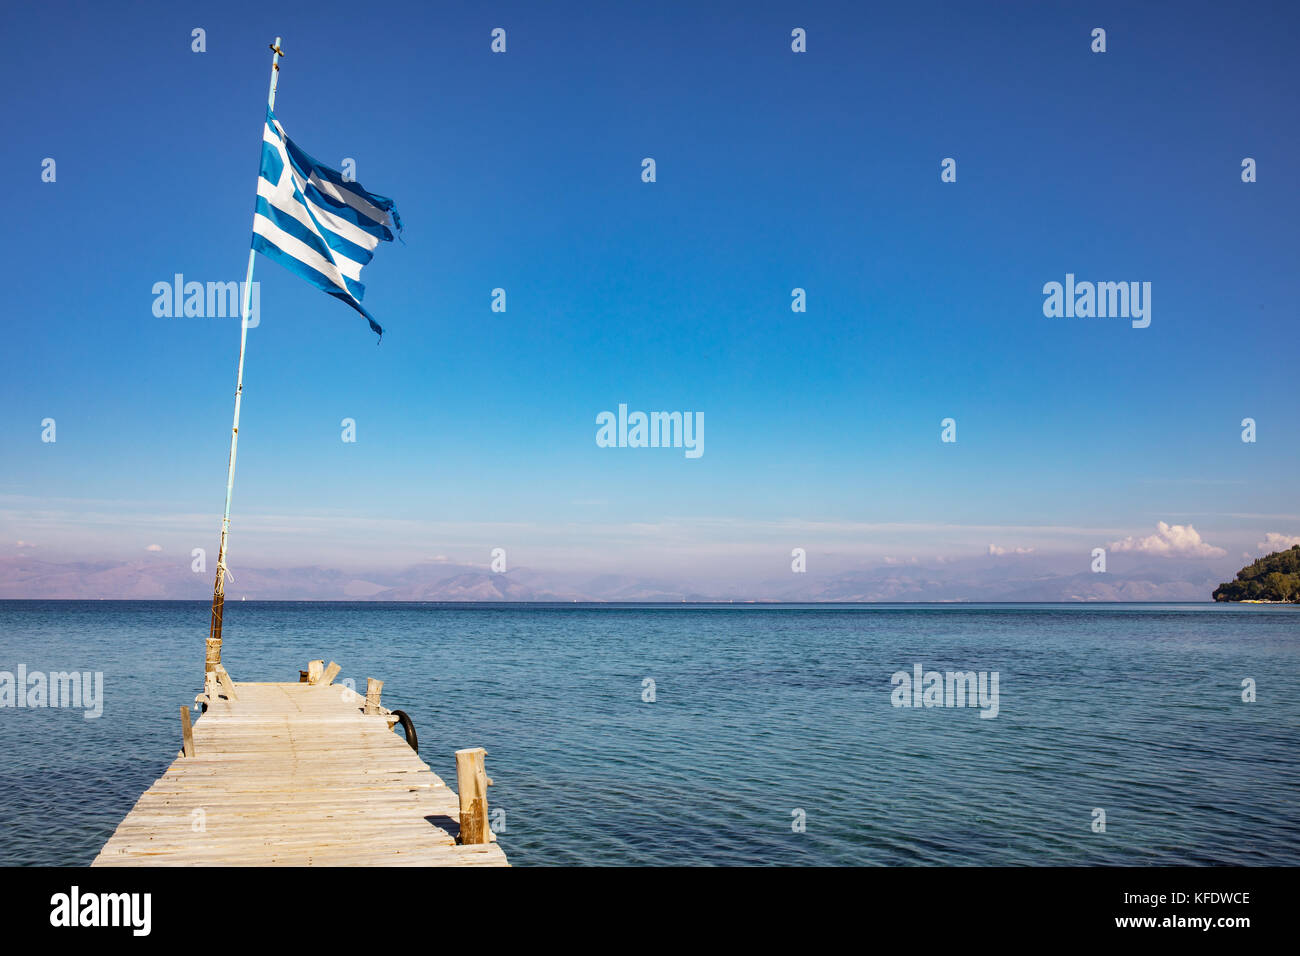 Wooden jetty or a pier on the Ionian Sea - a part of Mediterranean Sea, dark blue sky, autumn in Greece, Ionian - Stock Image